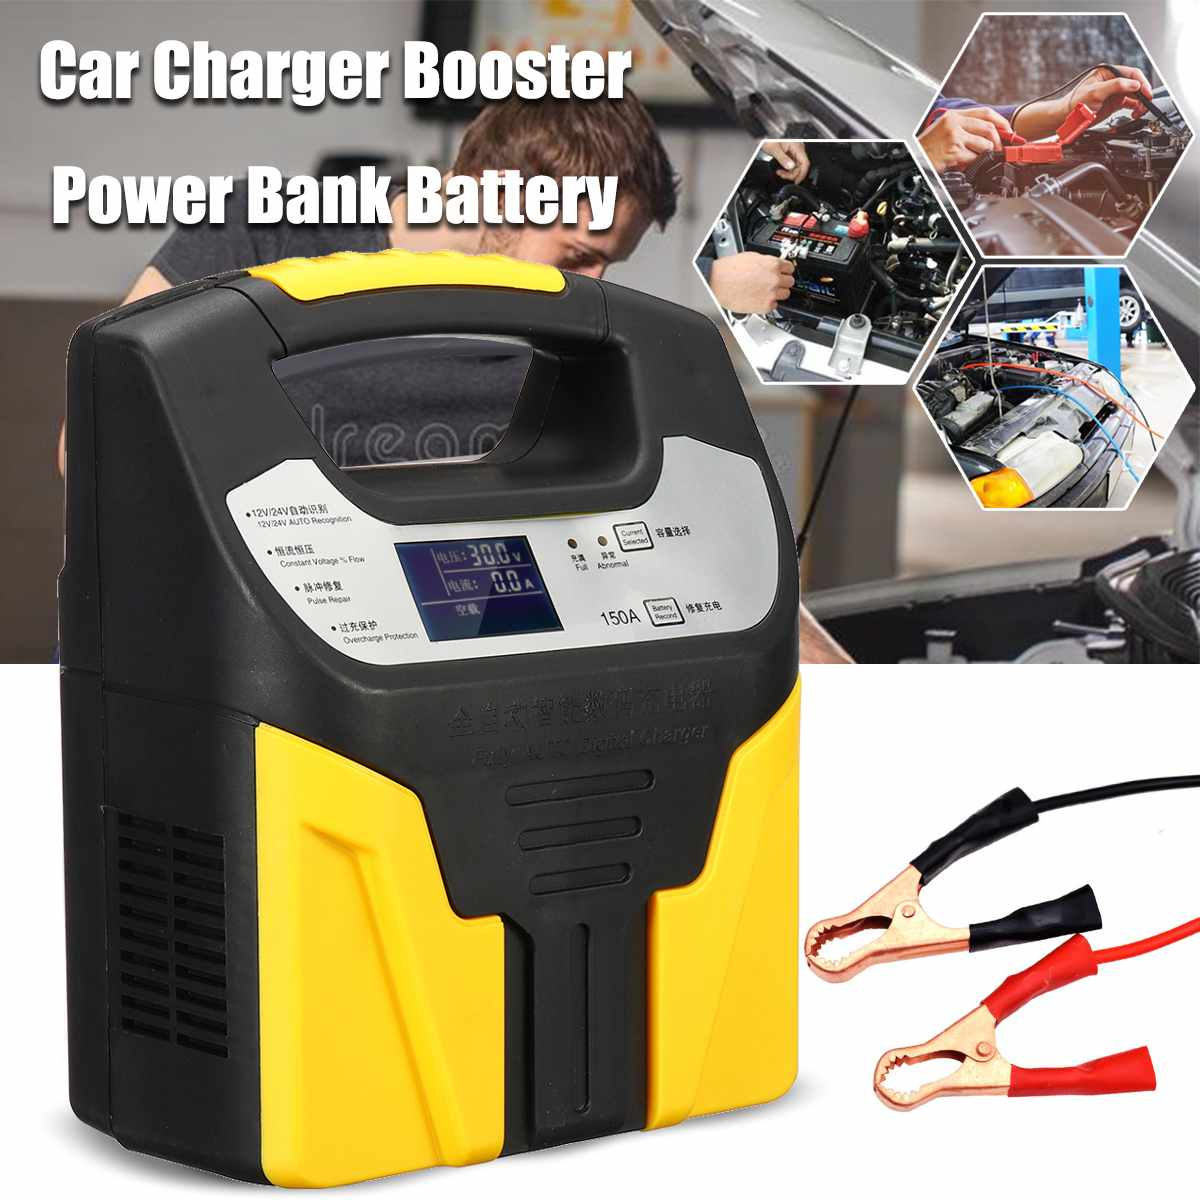 15A 220V Lead Acid Battery Chargers 12v 24V Smart Fast Charging Full Automatic Motorcycle Truck Car Battery Charger LCD Display|Chargers & Service Equipment| |  -